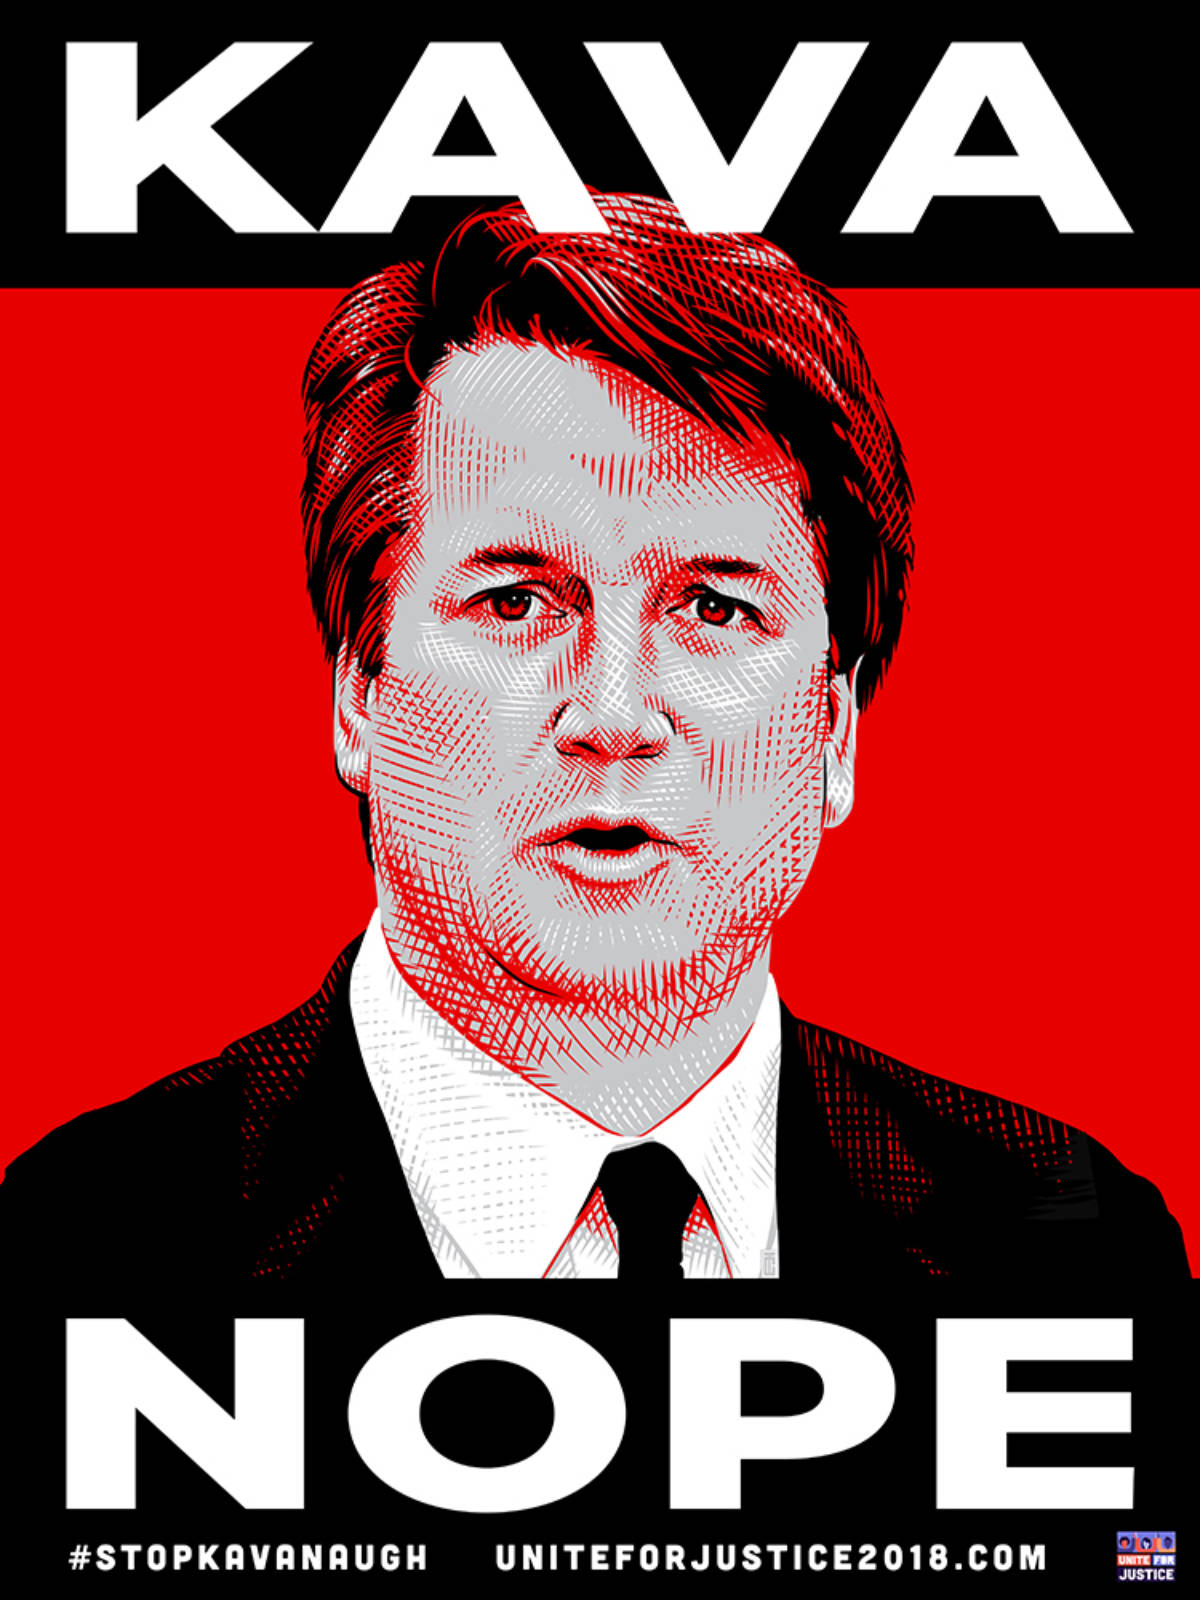 Illustrated etching of Supreme Court Nominee Brett Kavanaugh on a bright red background with text KAVA NOPE.